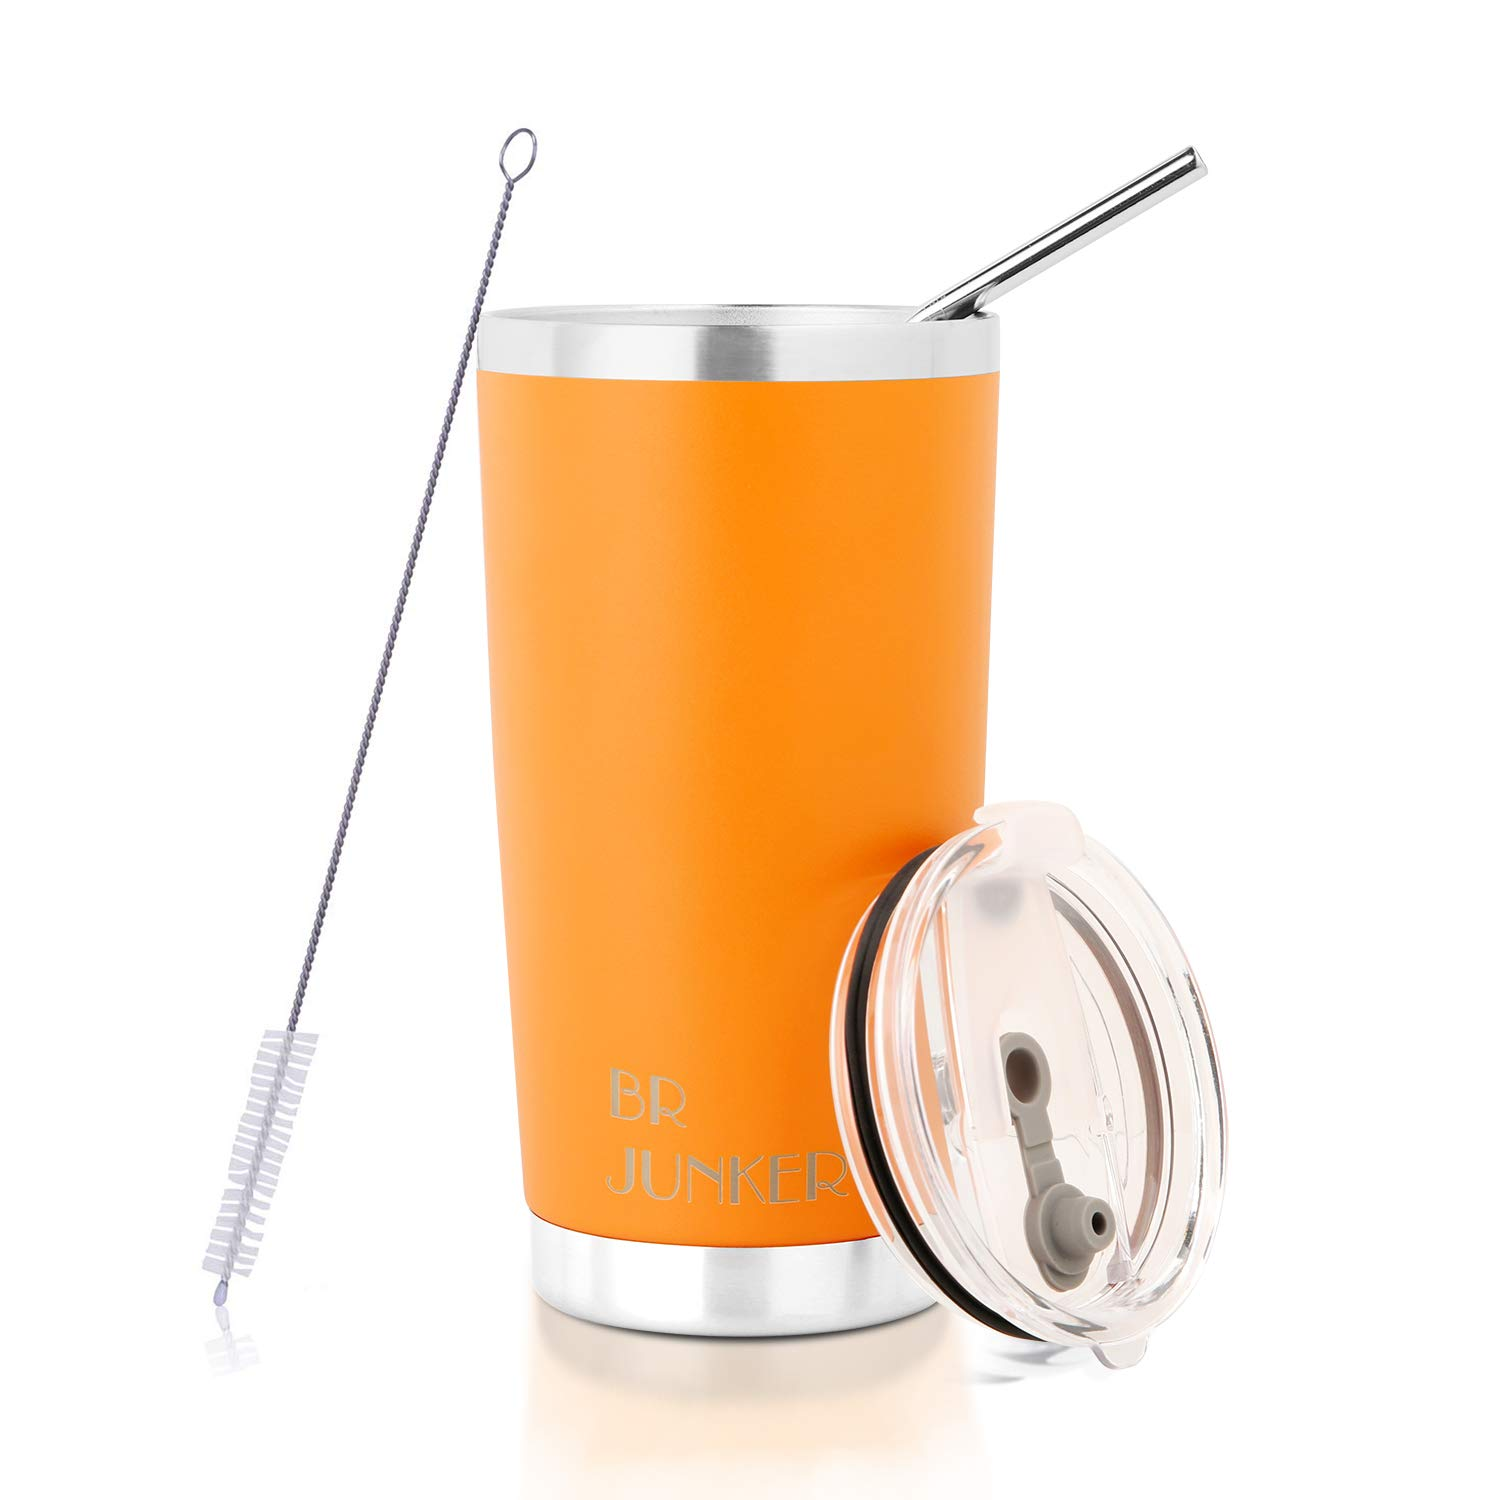 20 oz. Tumbler Double Wall Stainless Steel Vacuum Insulation Travel Mug with Crystal Clear Lid and Straw, Water Coffee Cup for Home,Office,School, Ice Drink, Hot Beverage,Orange